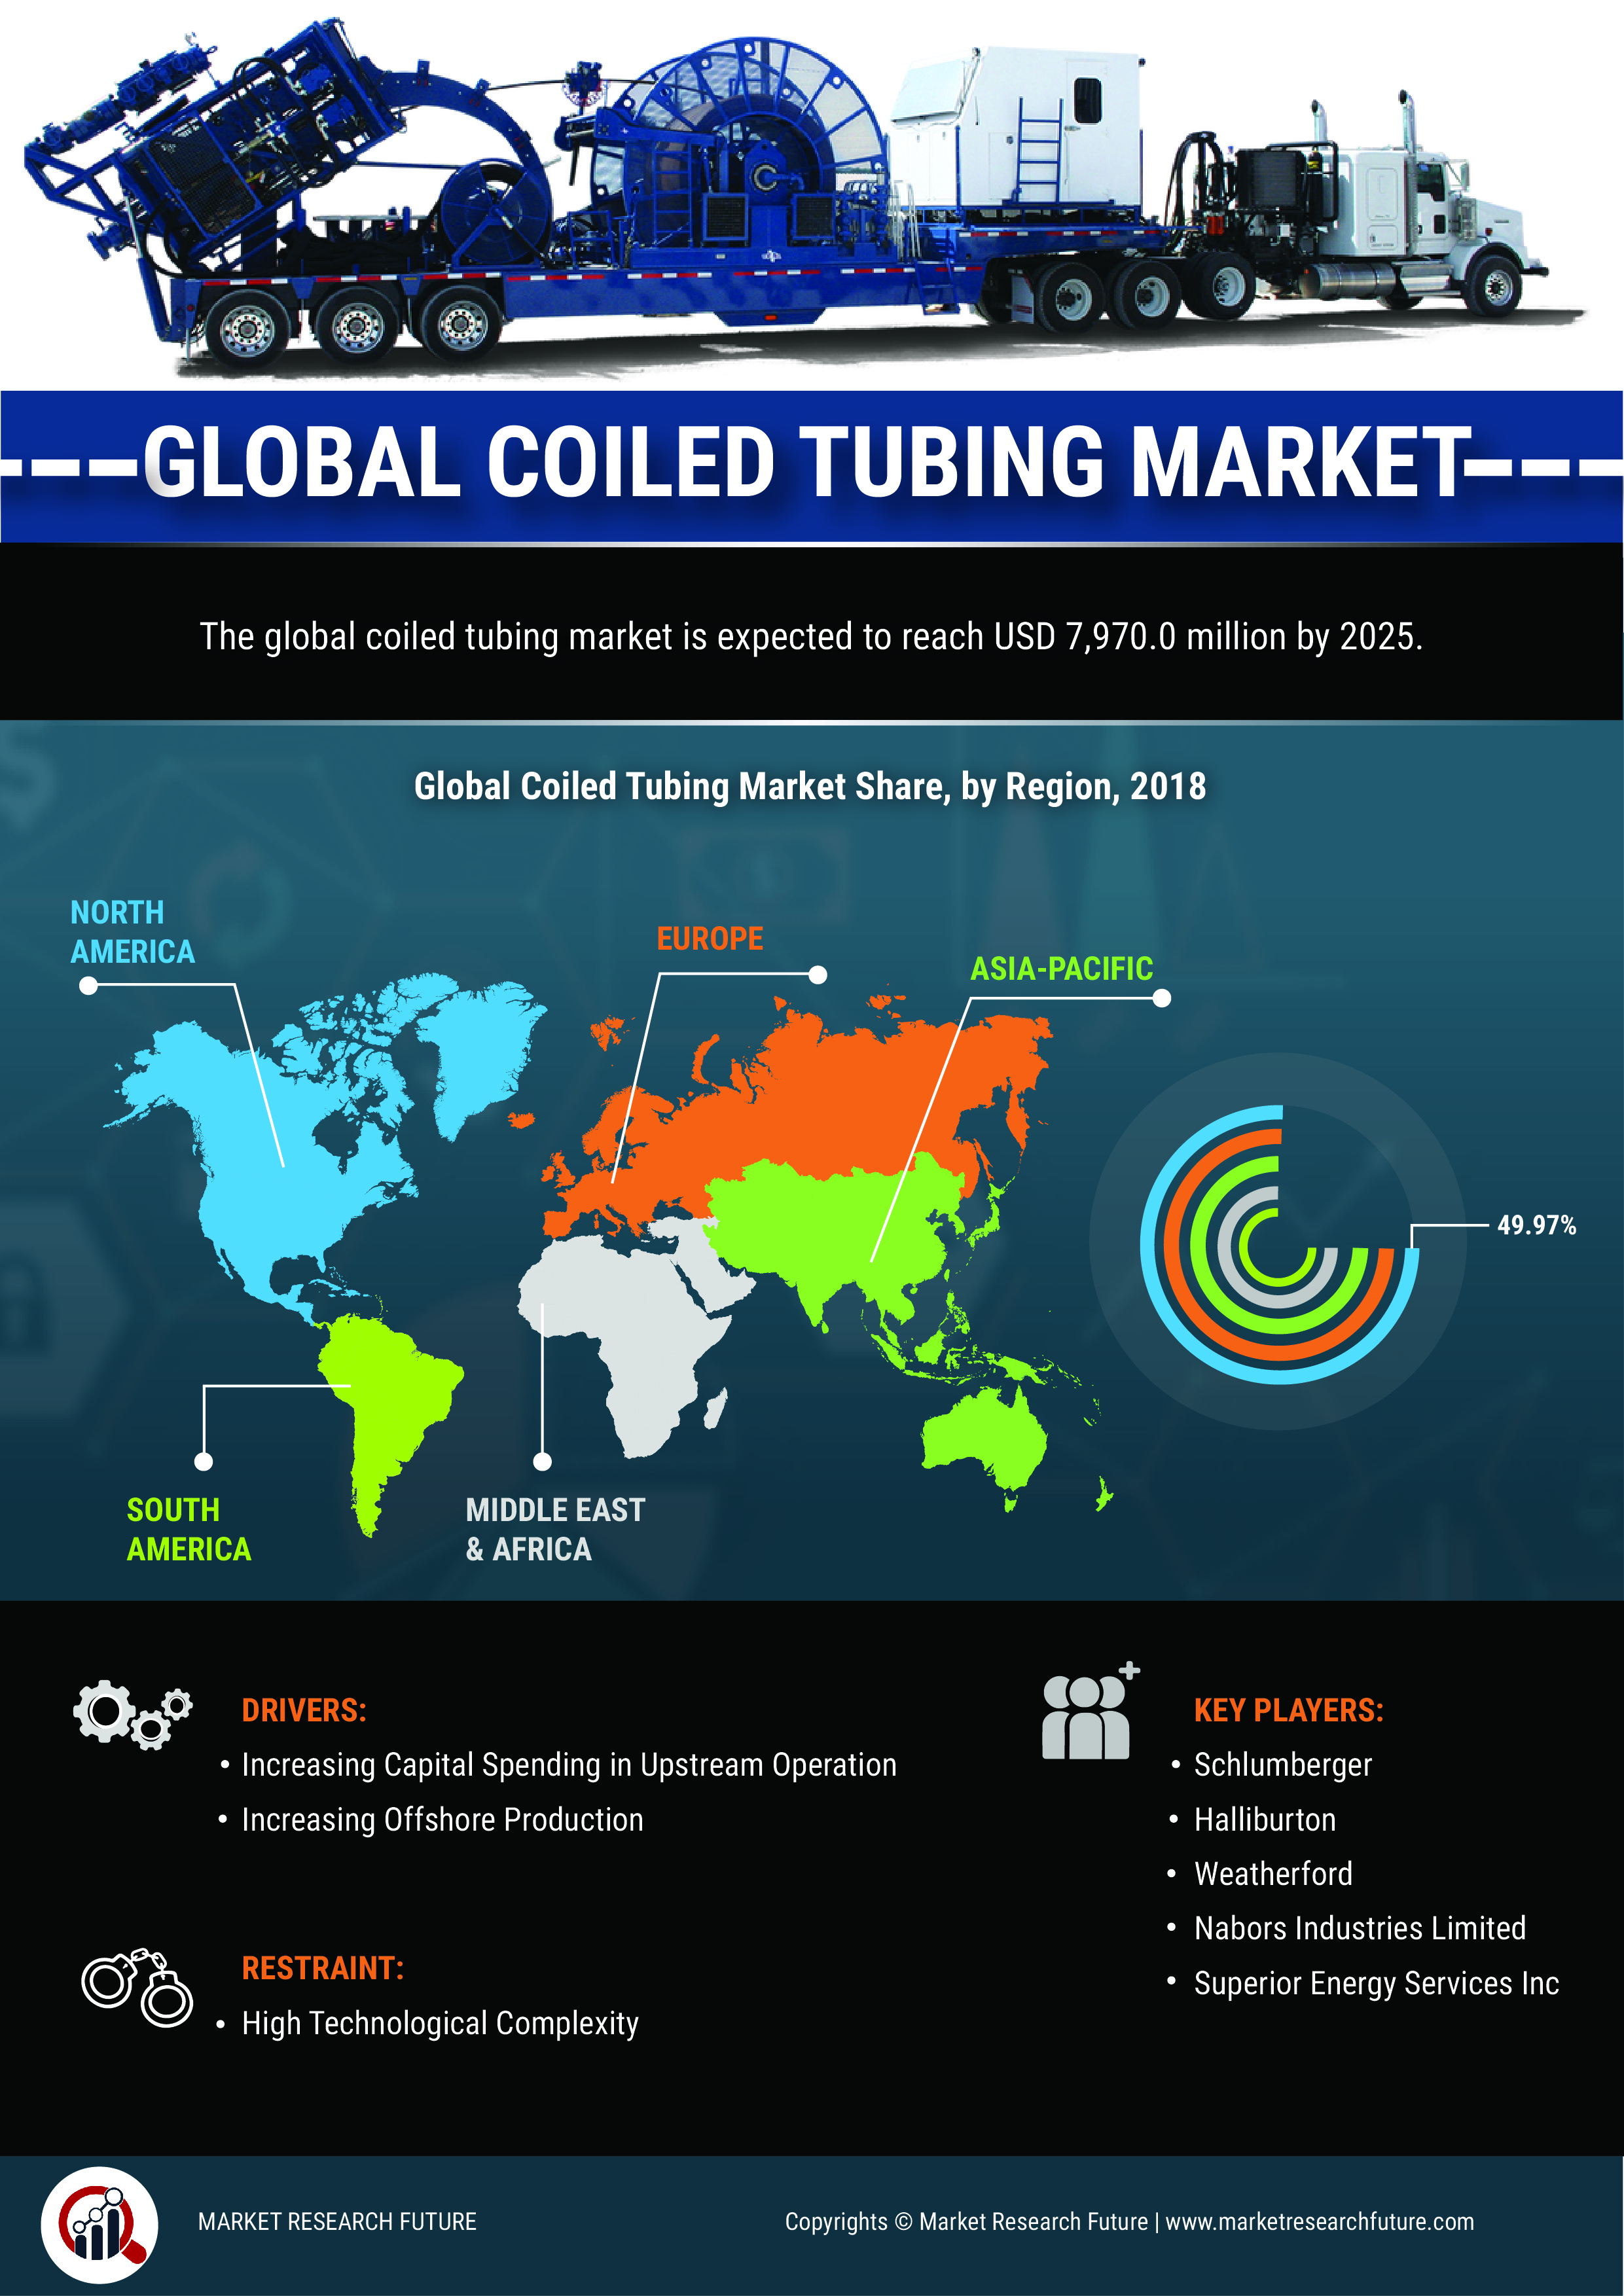 Coiled Tubing Industry 2019 Global Market Share, Size, Opportunity, Key Players, Statistics Data, Trends, Growth Factors, Competitive Landscape And Regional Forecast To 2023 Research Report